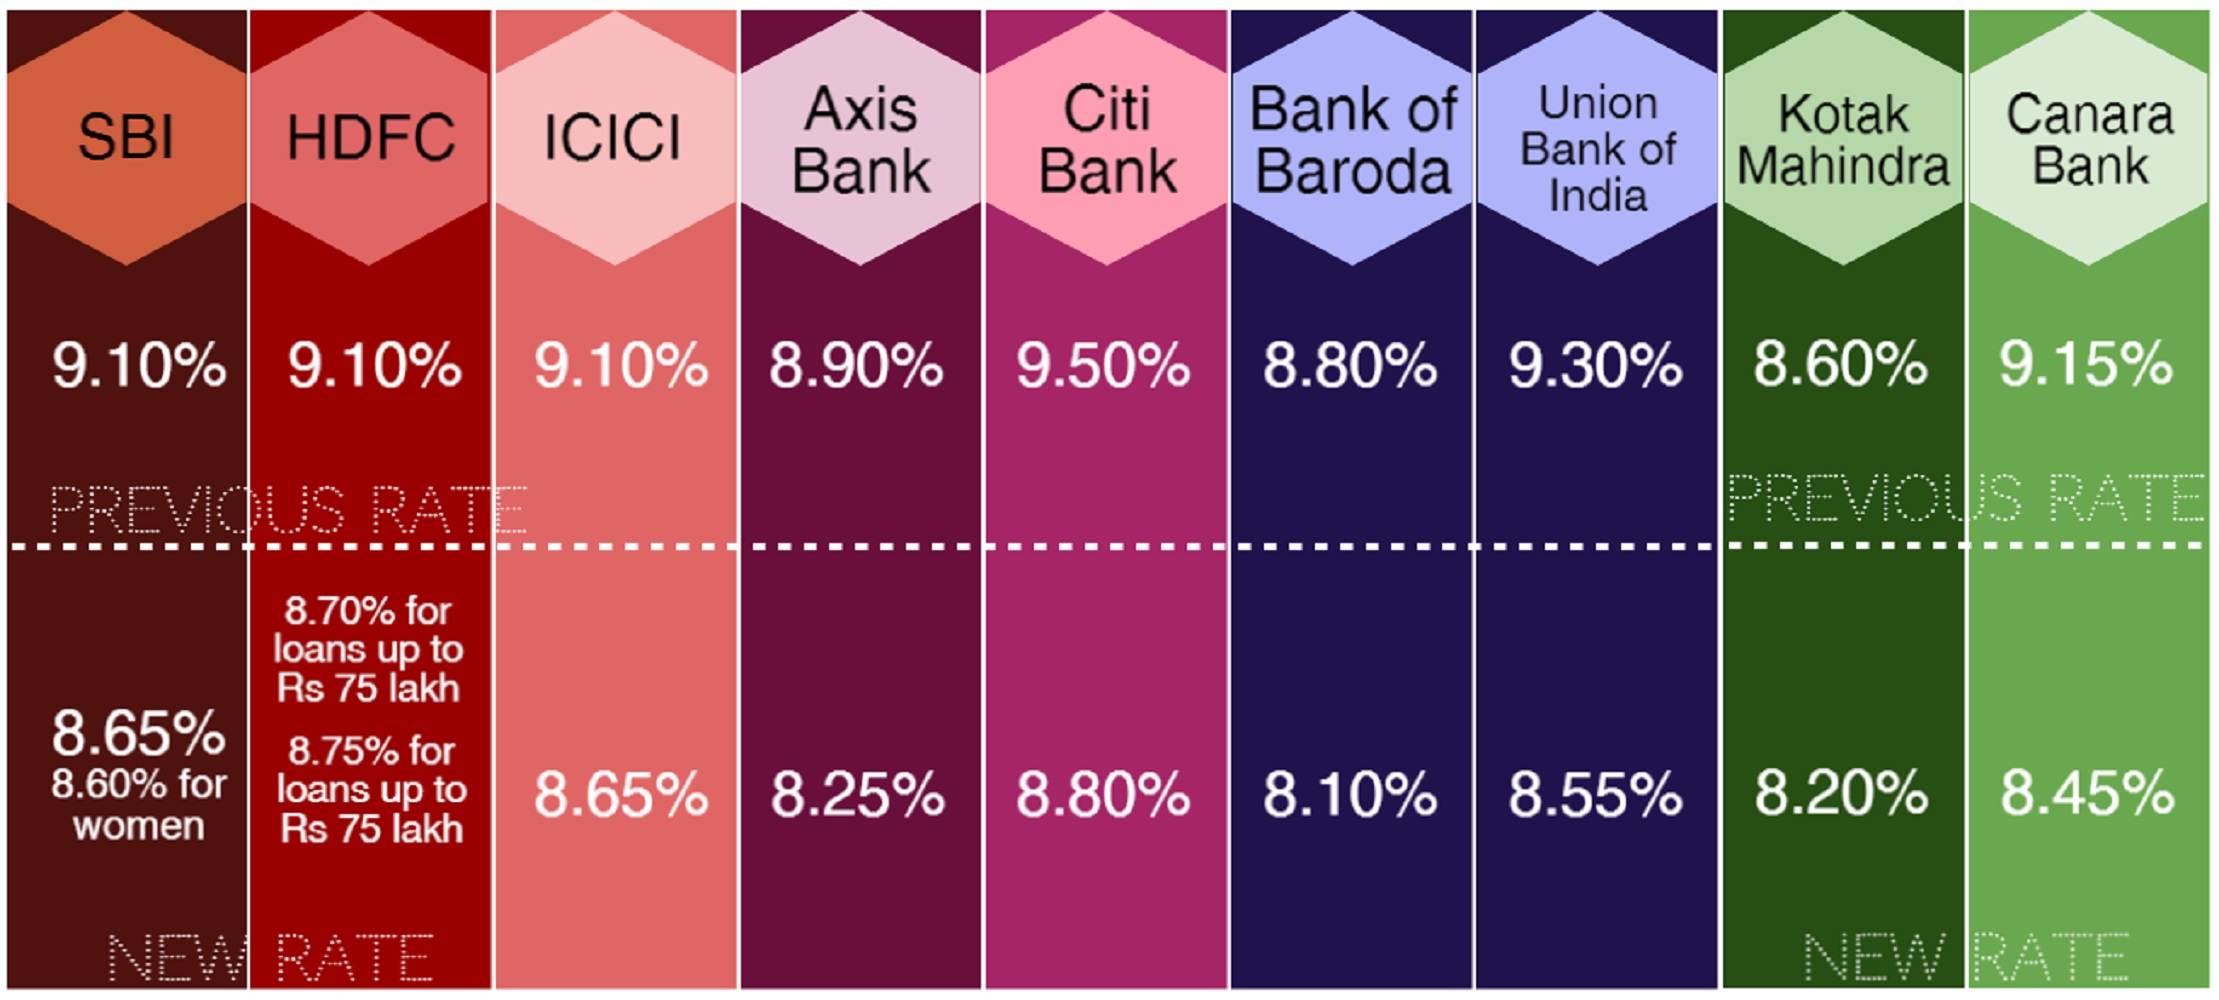 Bank For Home Loan In India Home Loan Interest Rates New Vs Old